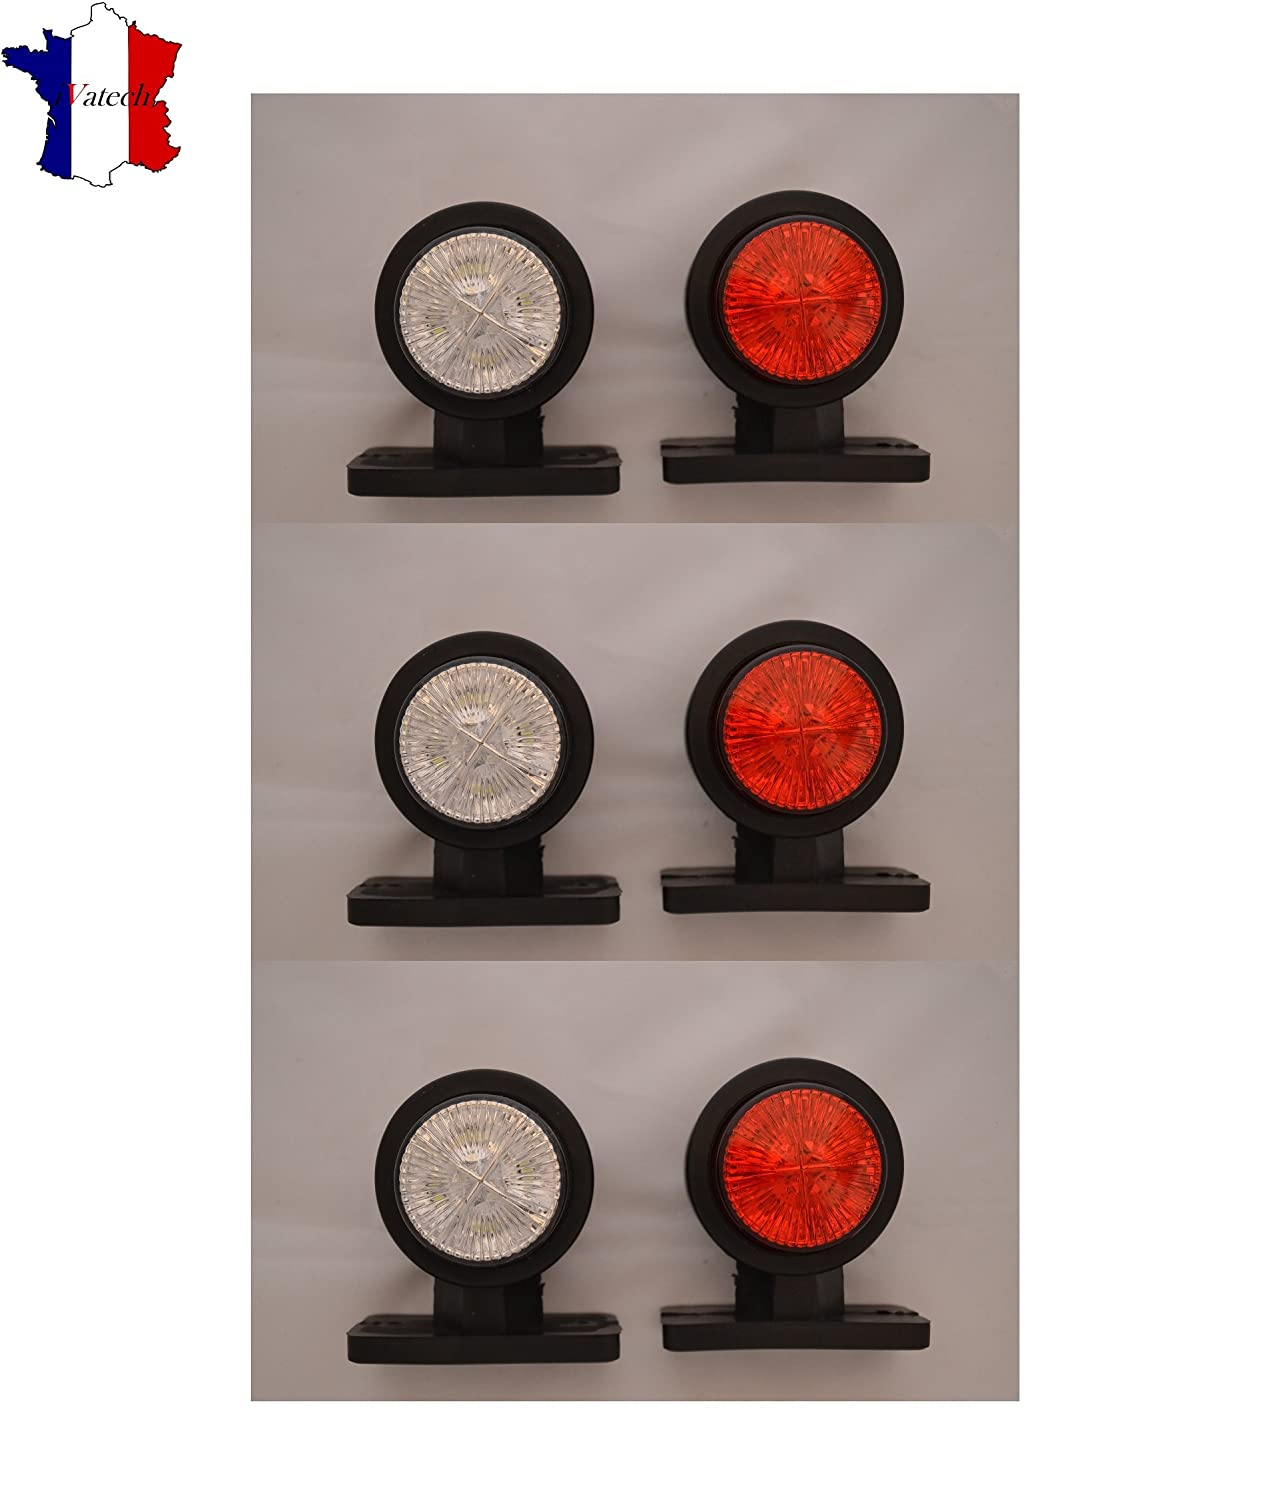 6 x 24 V SMD LED rot weiß Ampeln-Schablone LKW Anhänger Chassis ...